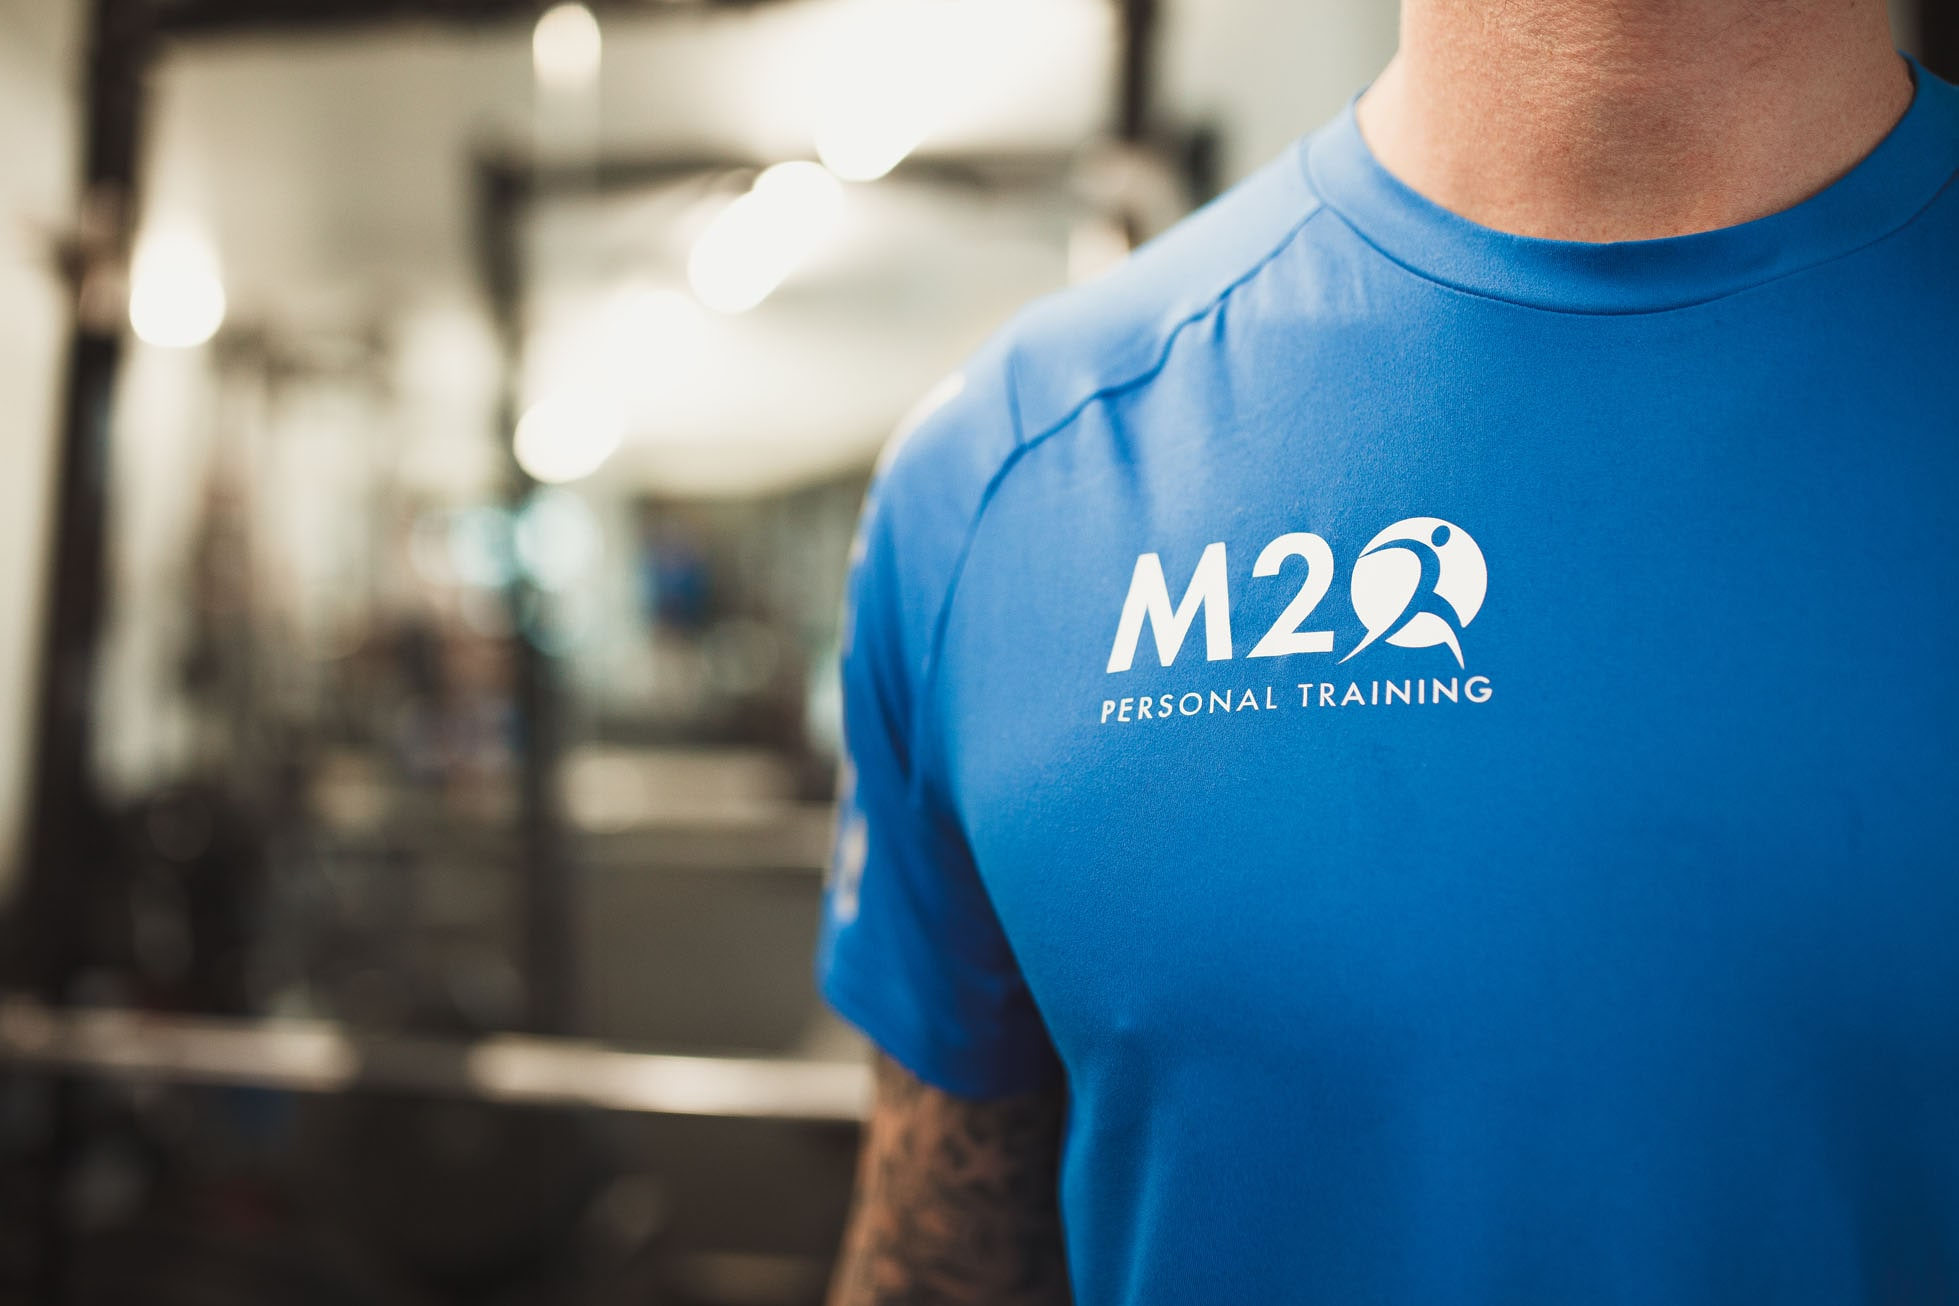 M20 Personal Training in Didsbury, Manchester.